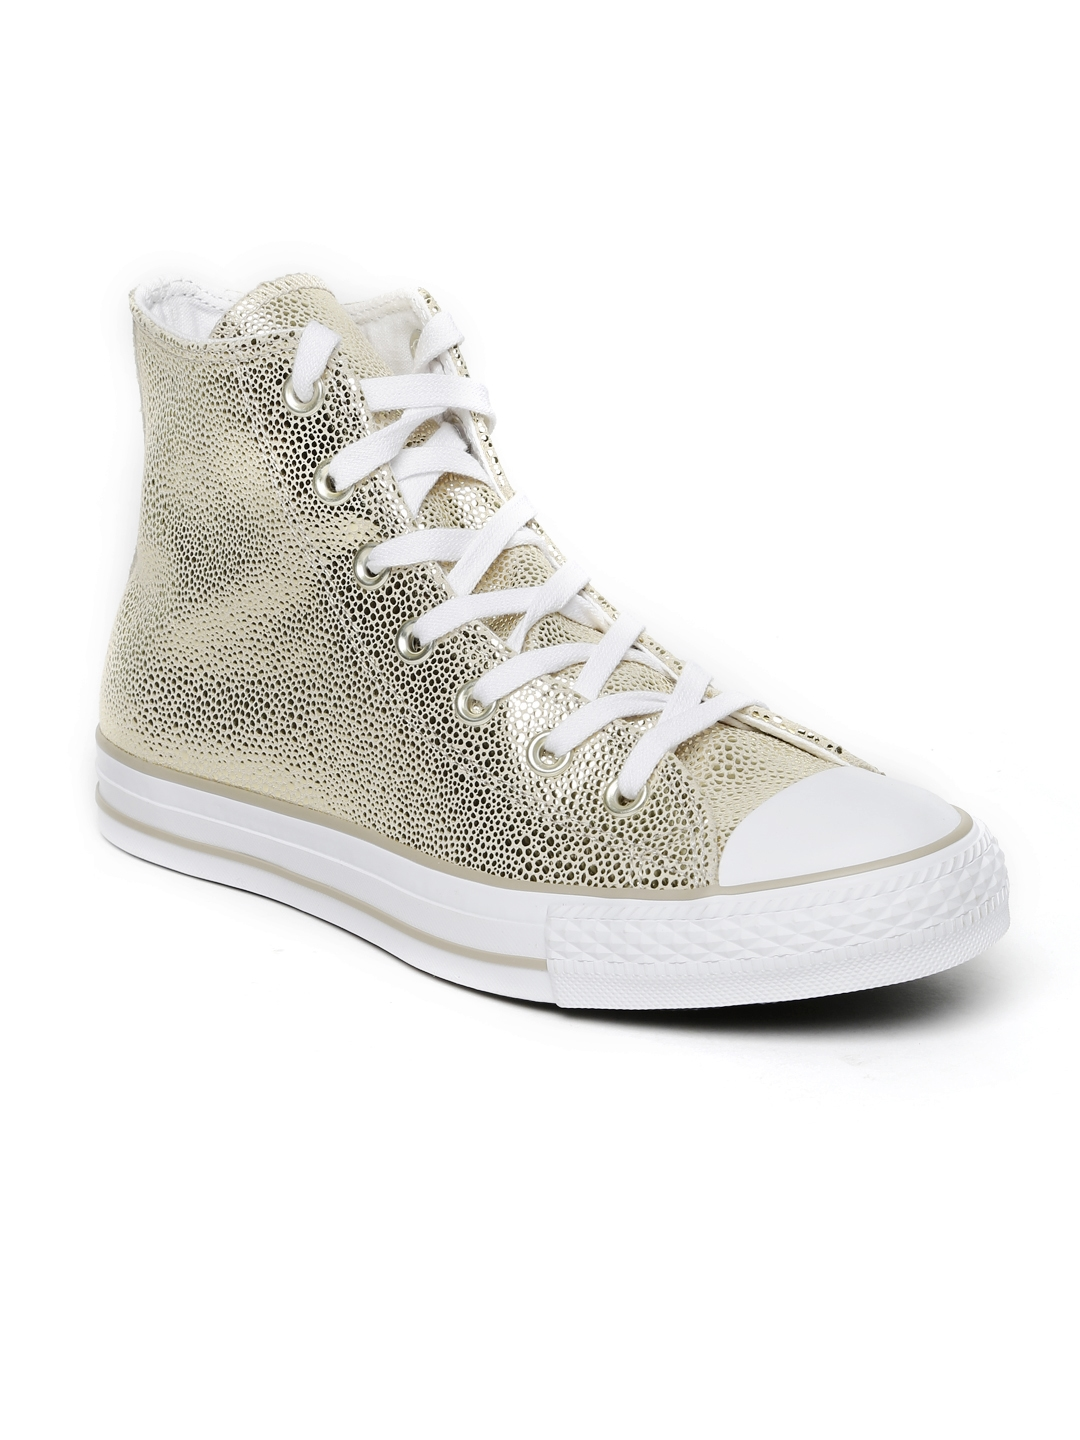 50ce38766bc8 Buy Converse Women Gold Toned Woven High Tops Sneakers - Casual ...